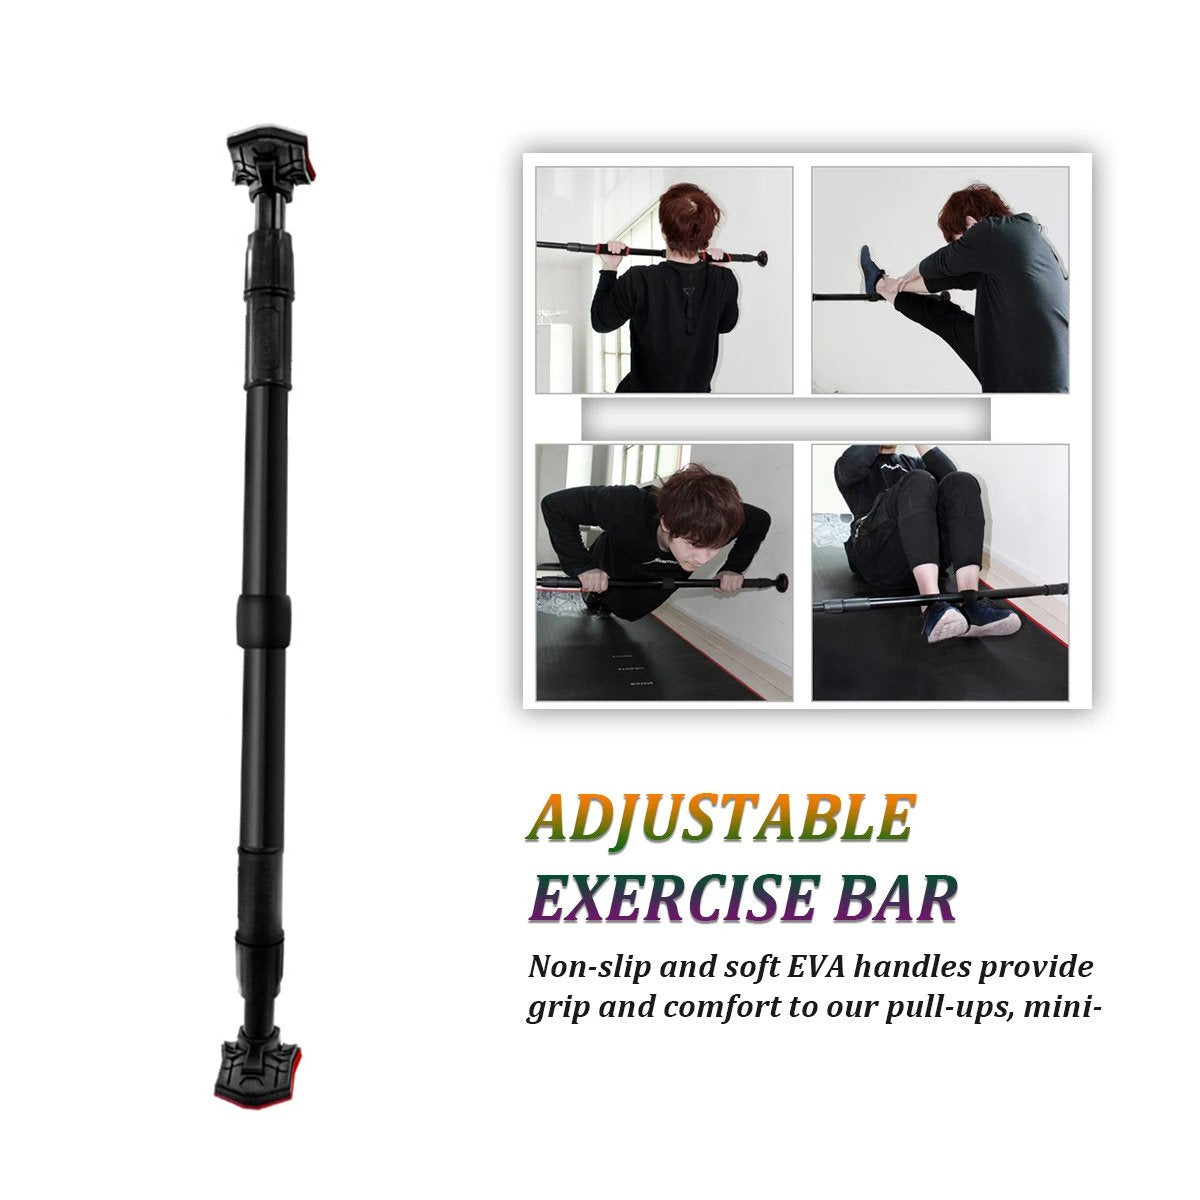 ADJUSTABLE EXERCISE BAR